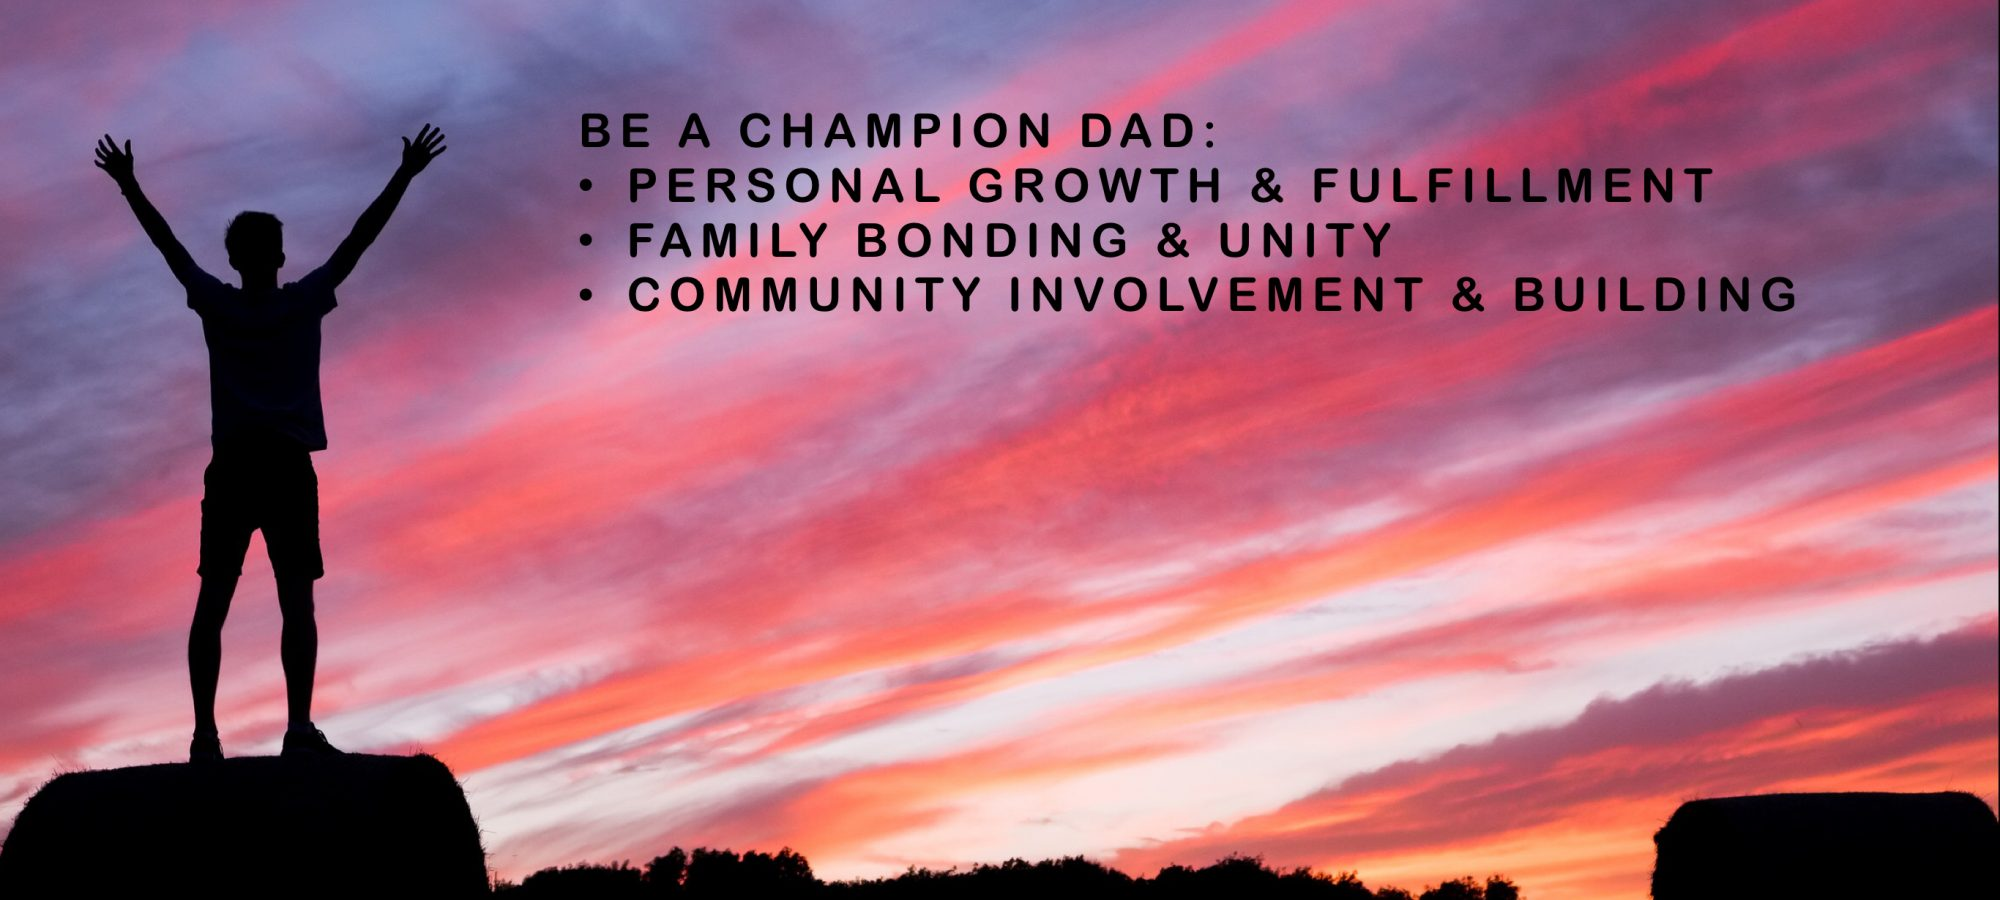 Be a Champion Dad